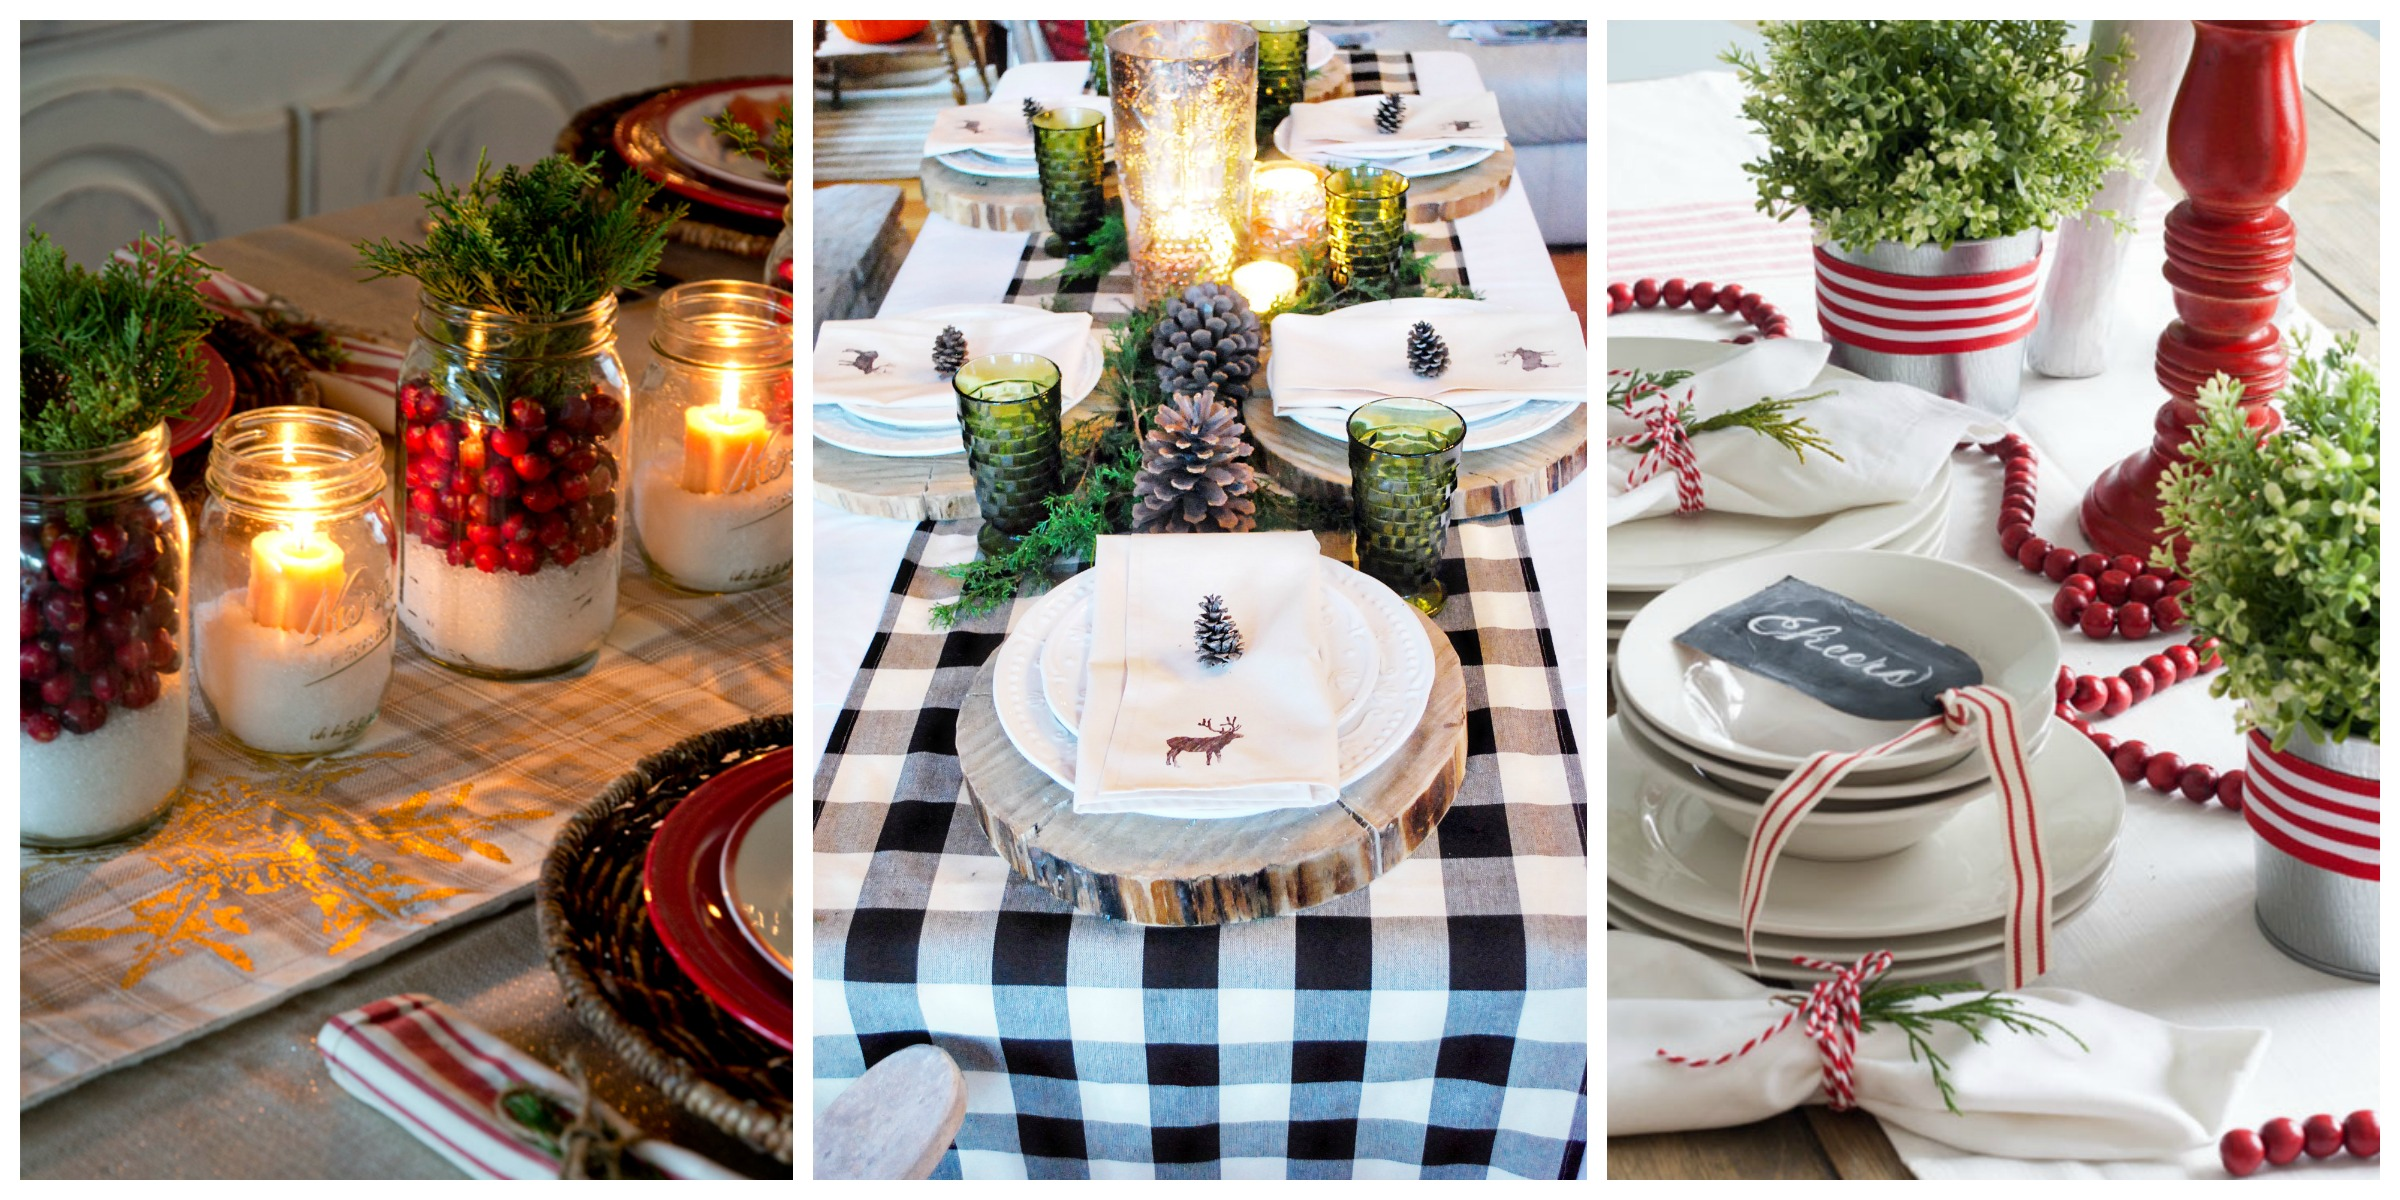 Outdoor Christmas Table Decoration Ideas : Christmas table decorations centerpieces ideas for